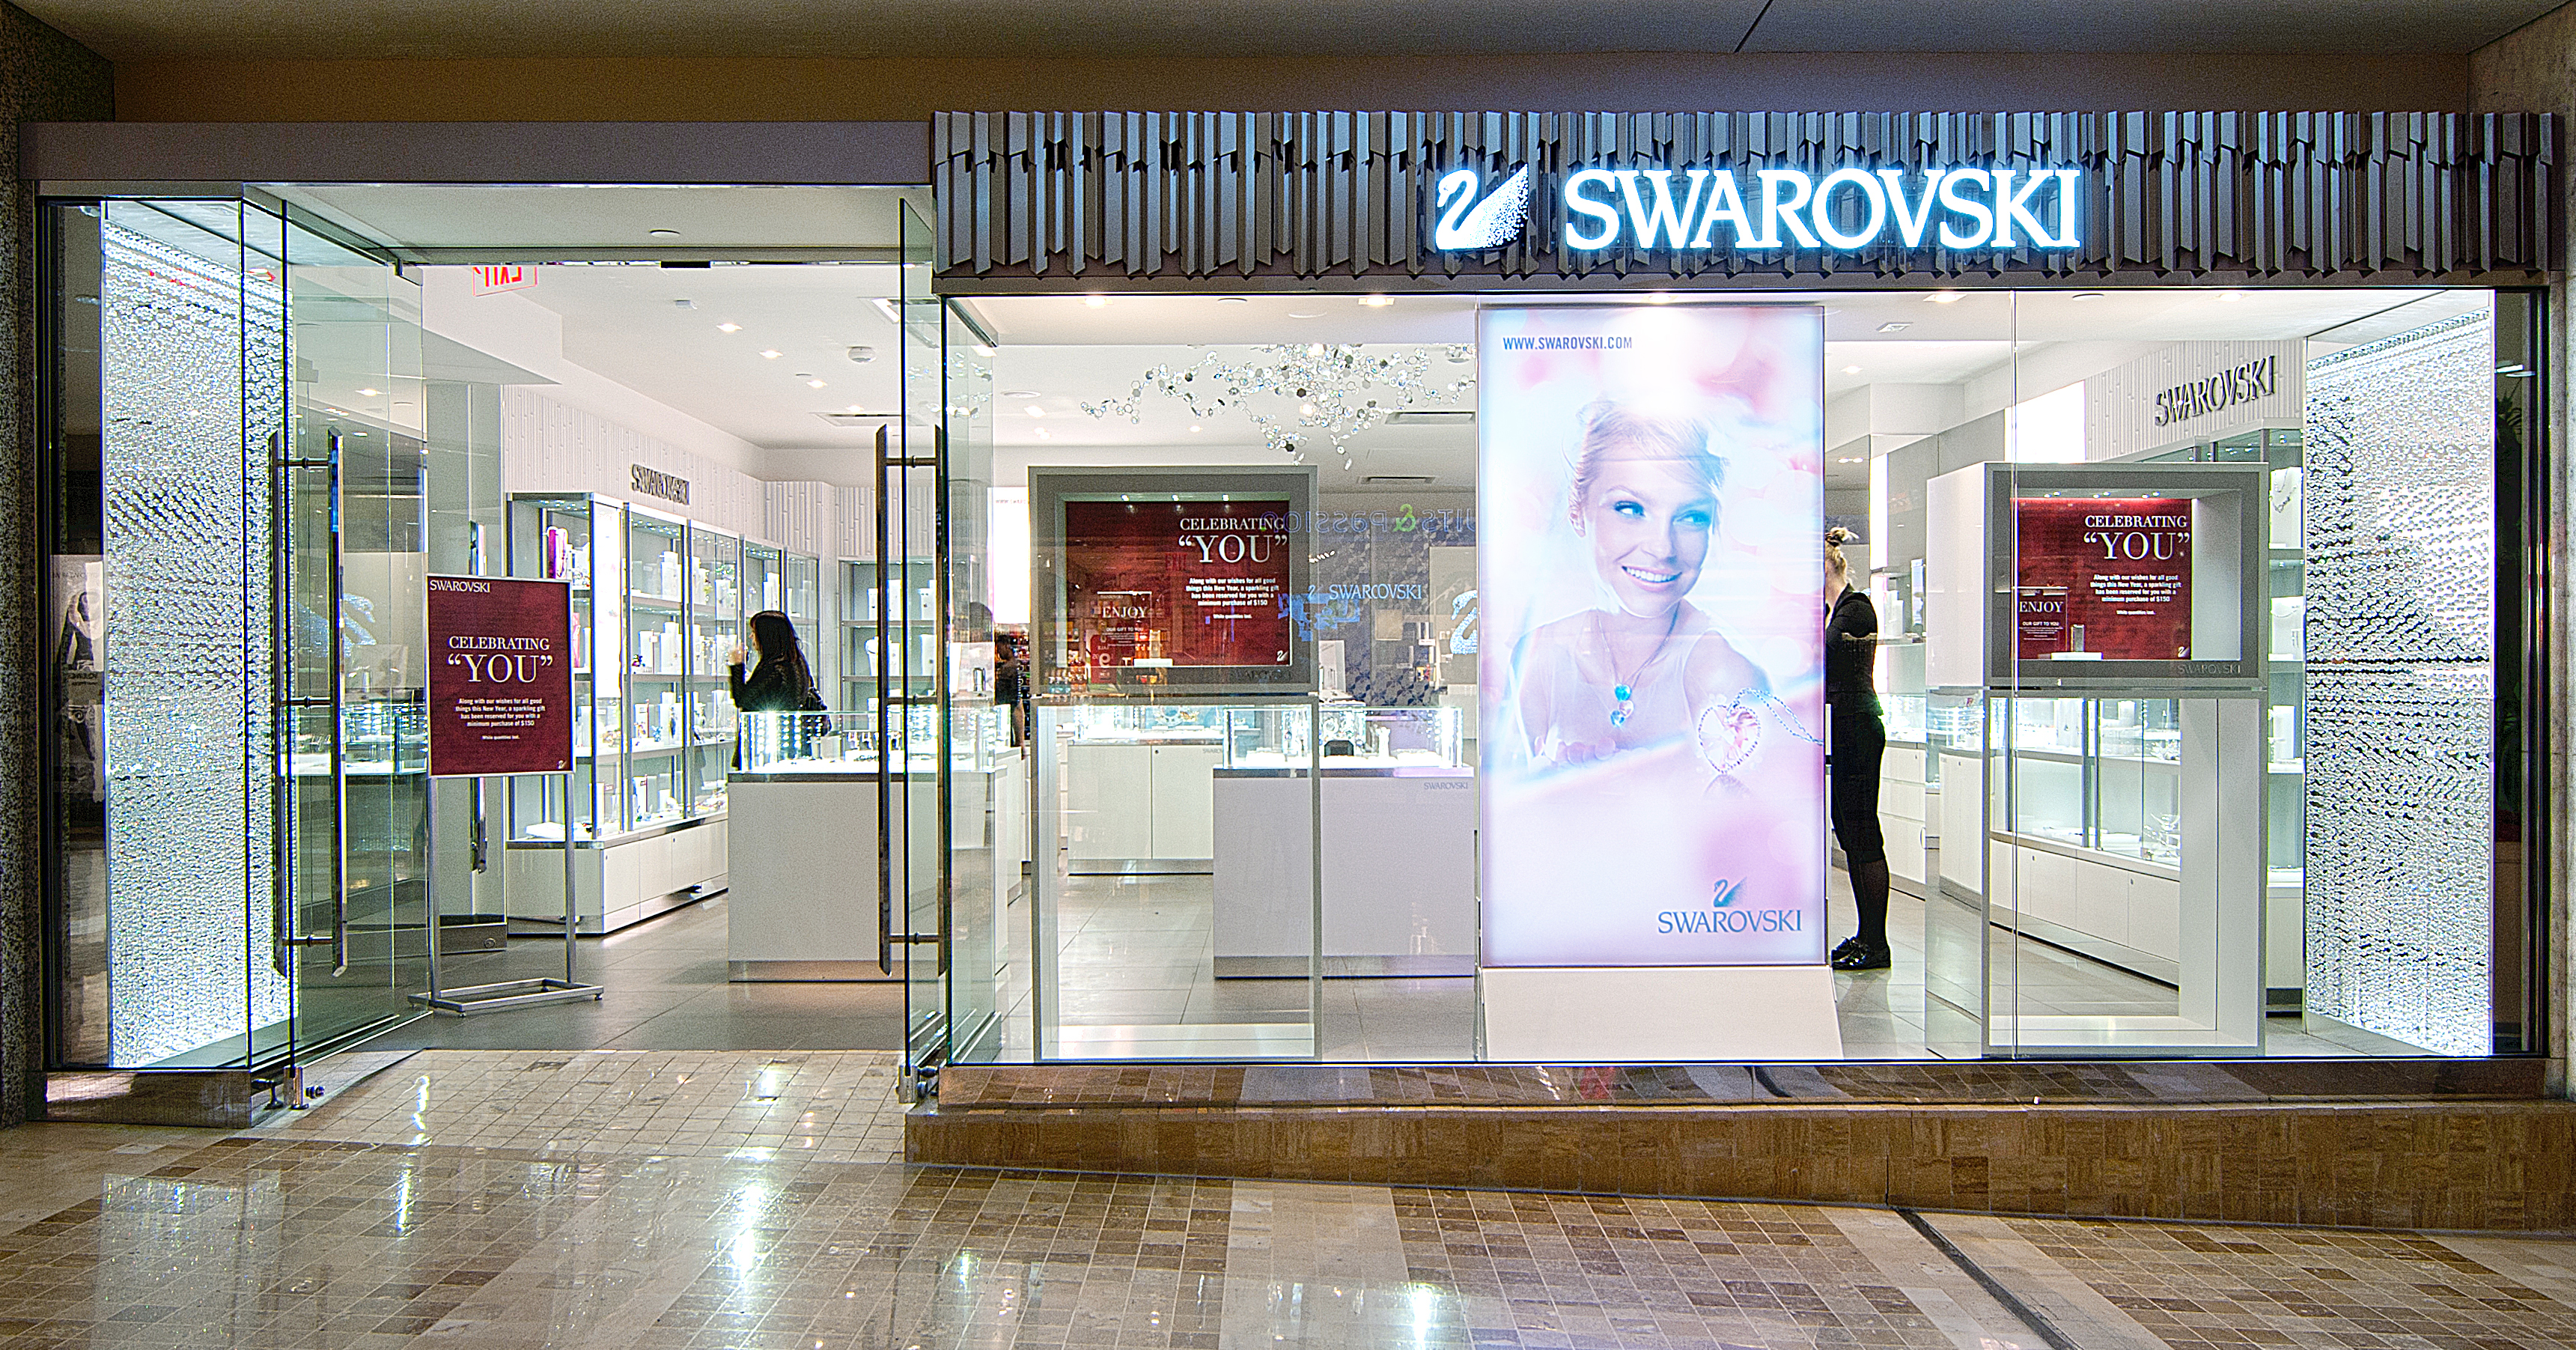 Swarovski's outlet and online stores offer crystal products you won't find anywhere else. The website offers easy-to-navigate categories for customers to browse, so you're sure to have an easy time finding exactly what you want.